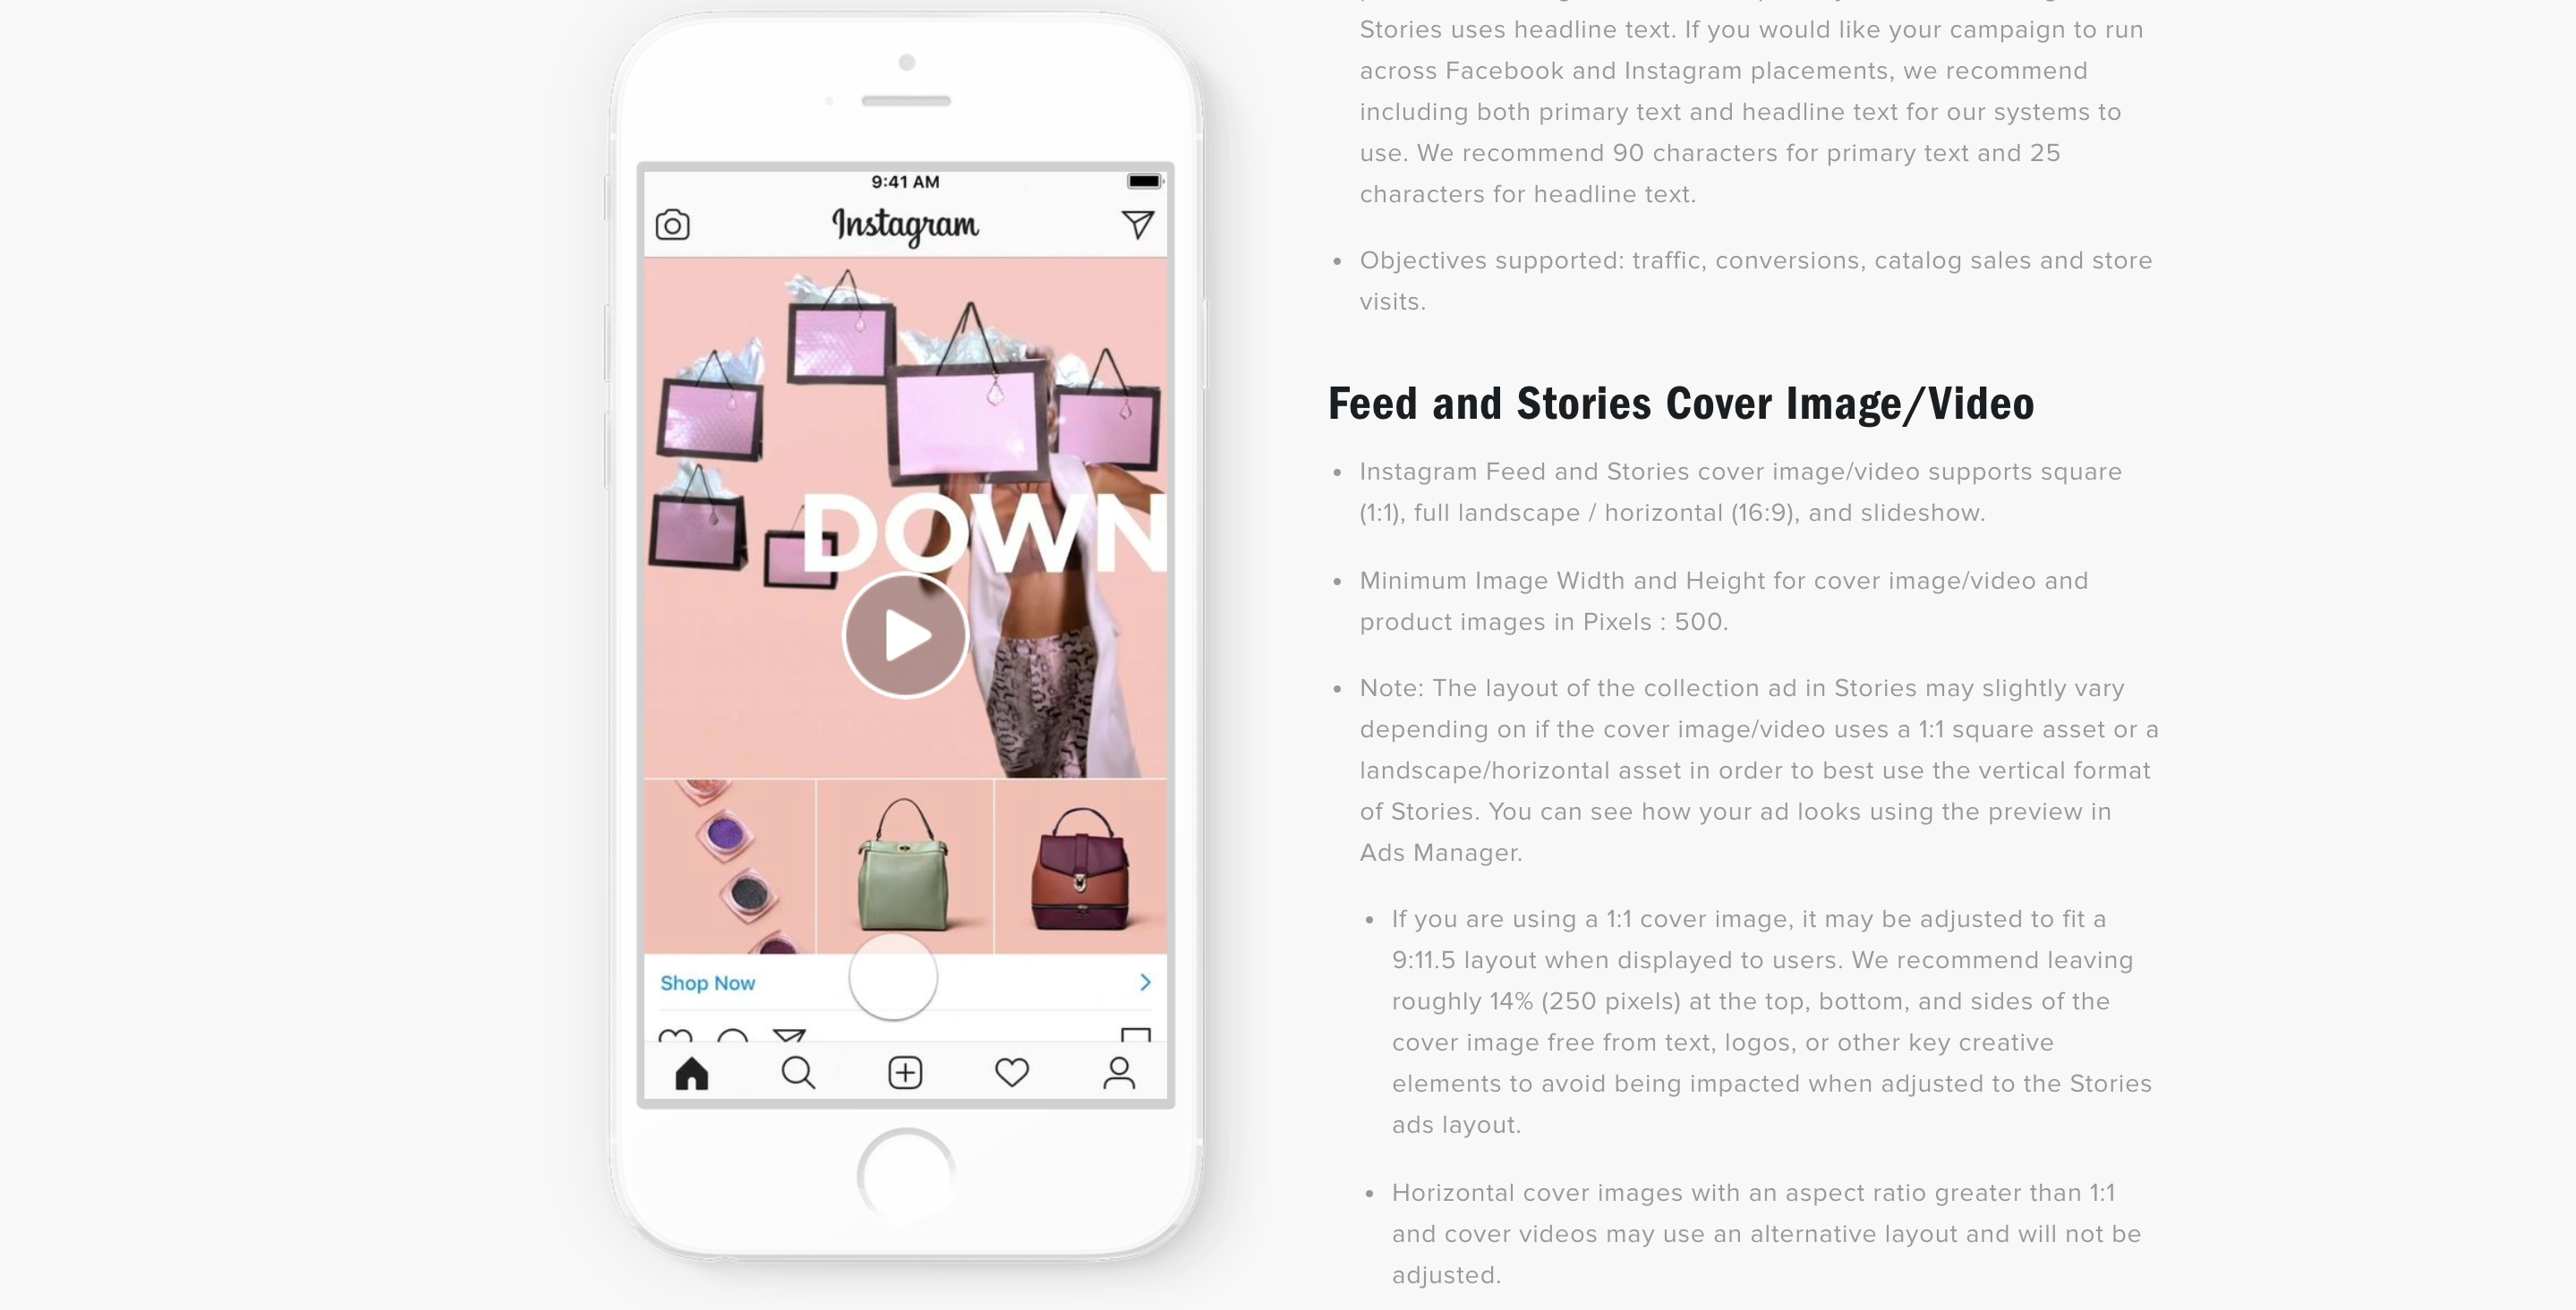 how-to-advertise-on-instagram-what-you-need-to-know How to Advertise on Instagram: What You Need to Know